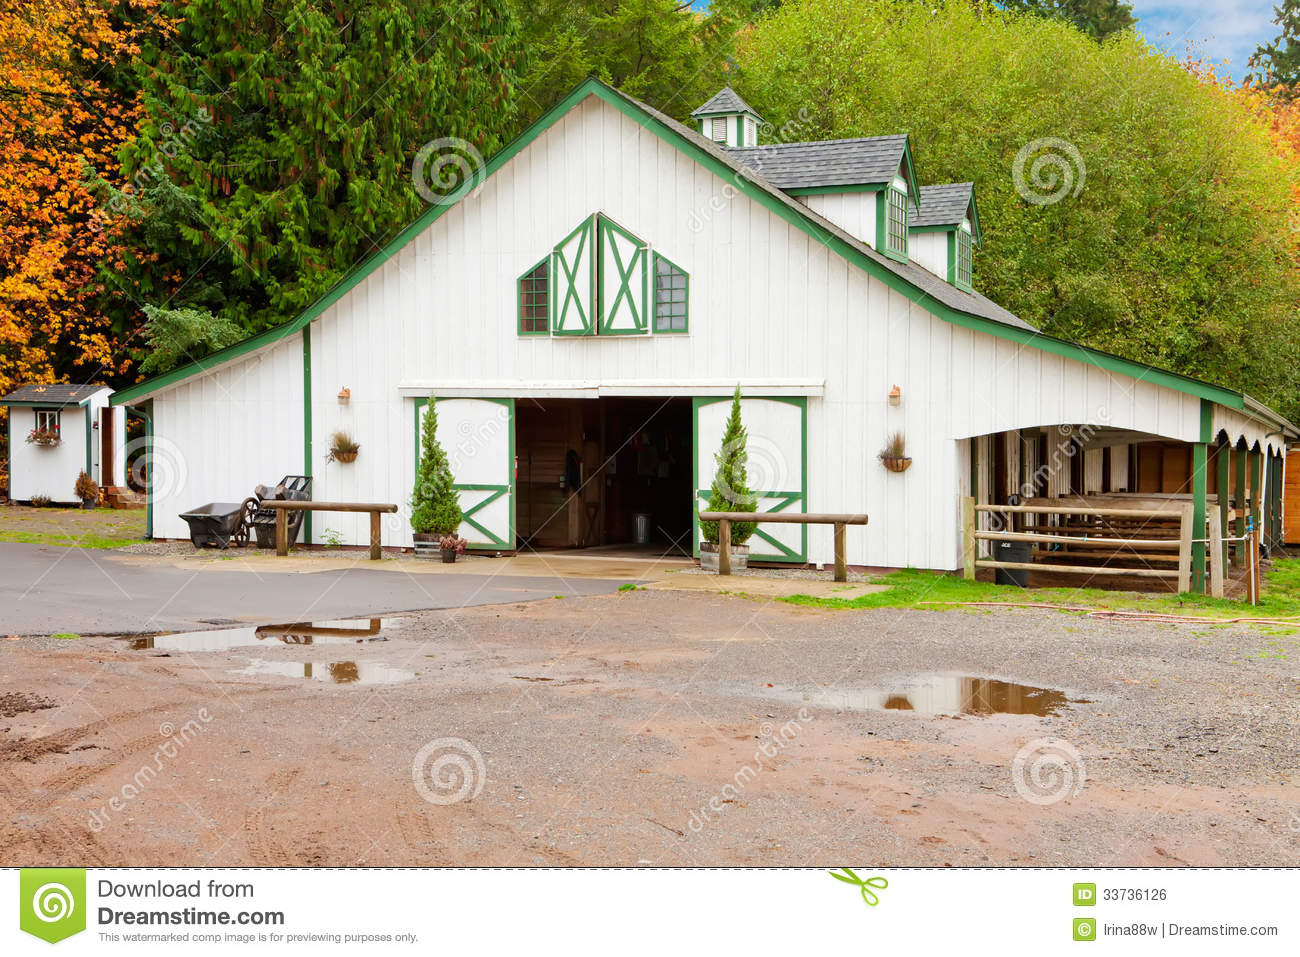 Nice horse barn plans and prices 6 white horse barn wuth for Horse barn prices